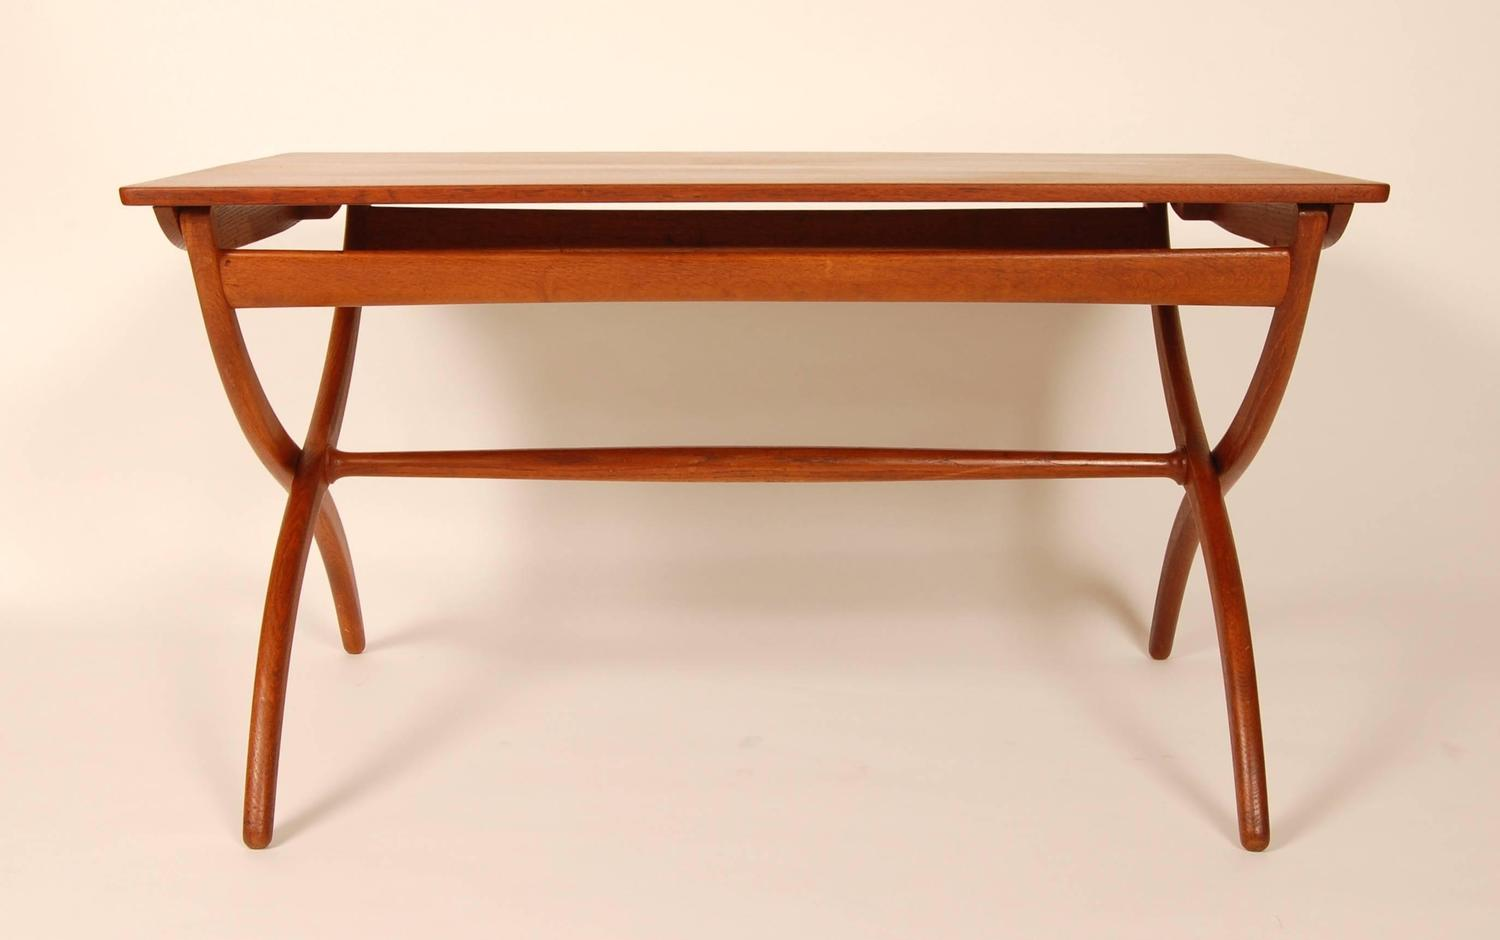 Ole wanscher adjustable coffee table for sale at 1stdibs - Telescoping coffee table ...